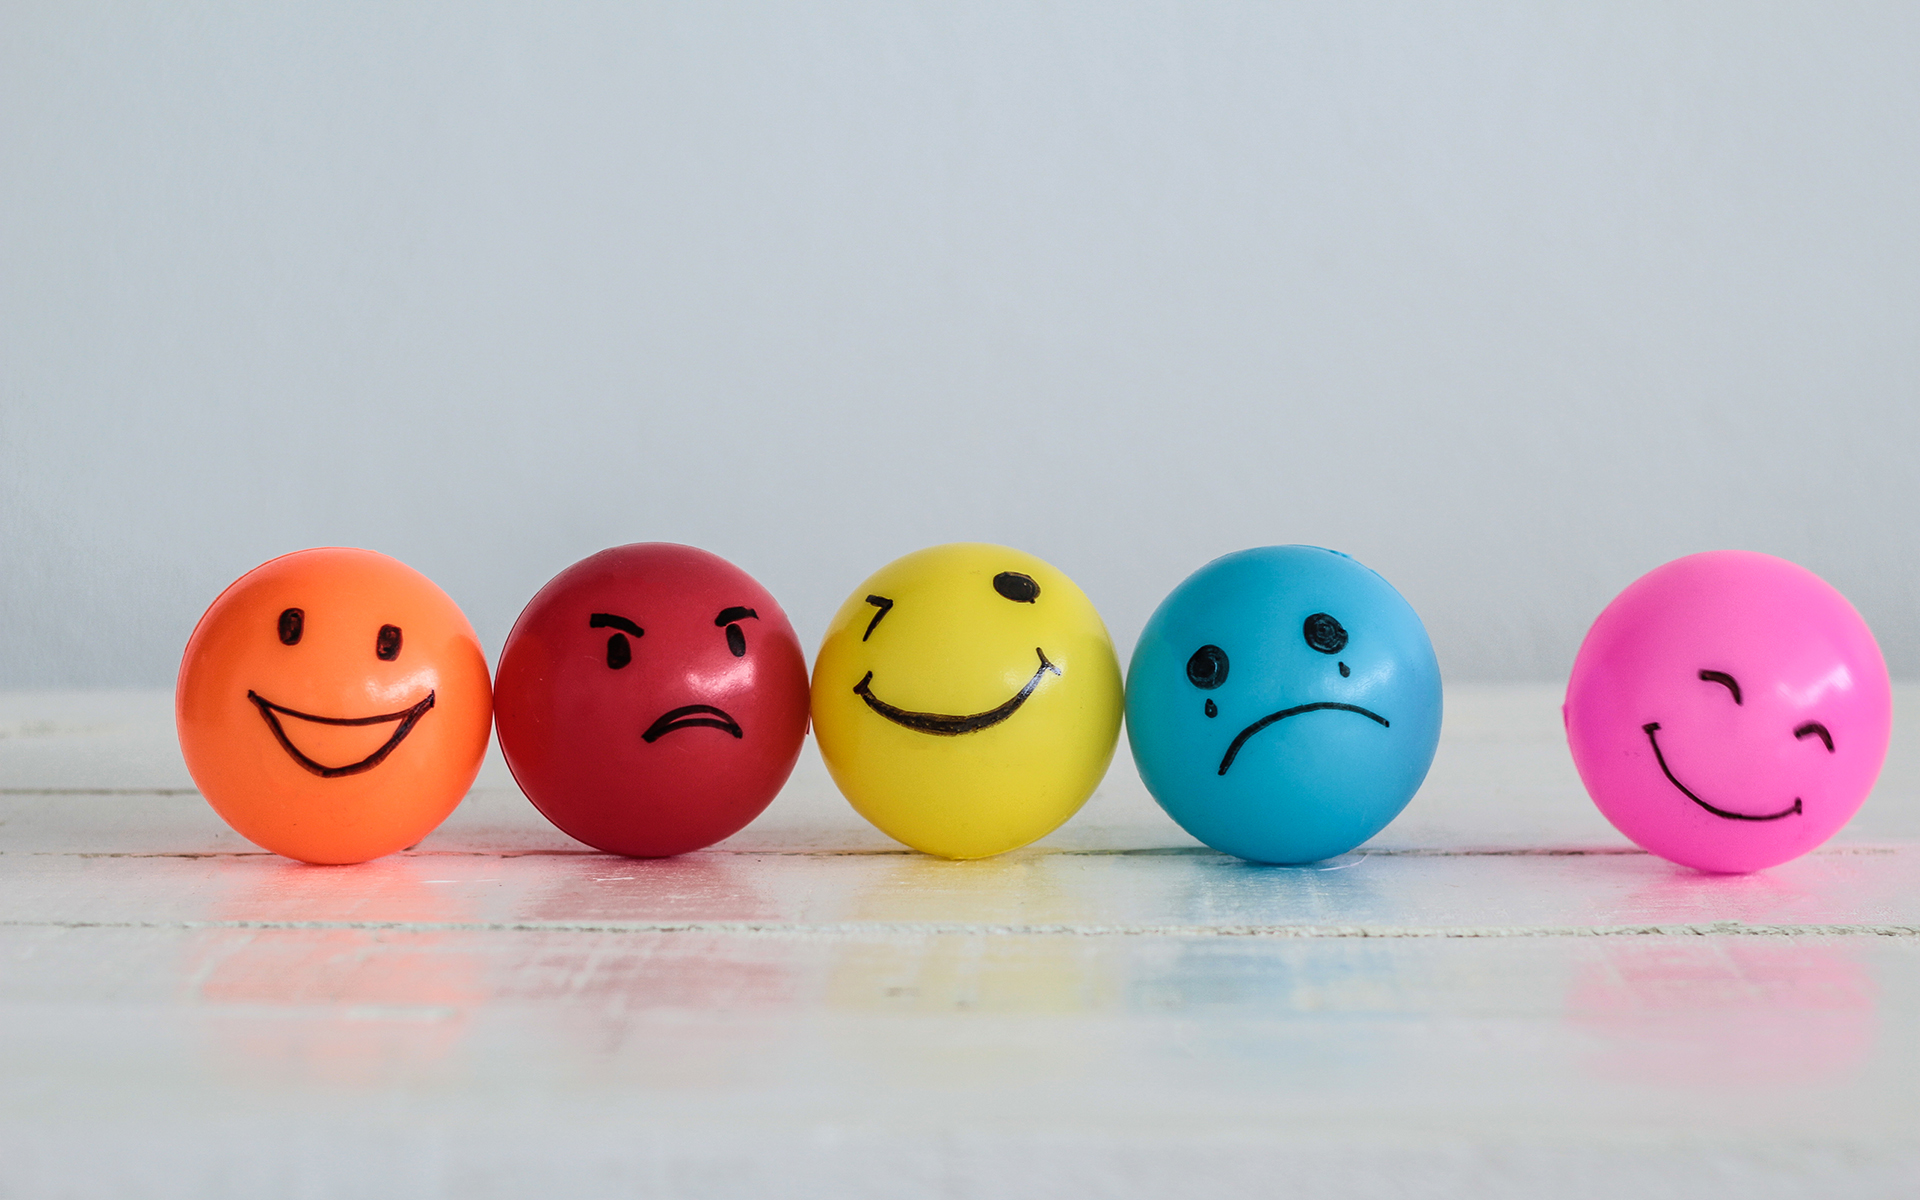 Why you are not your moods - Emotions balls background, Happy Smiley faces ball in yellow